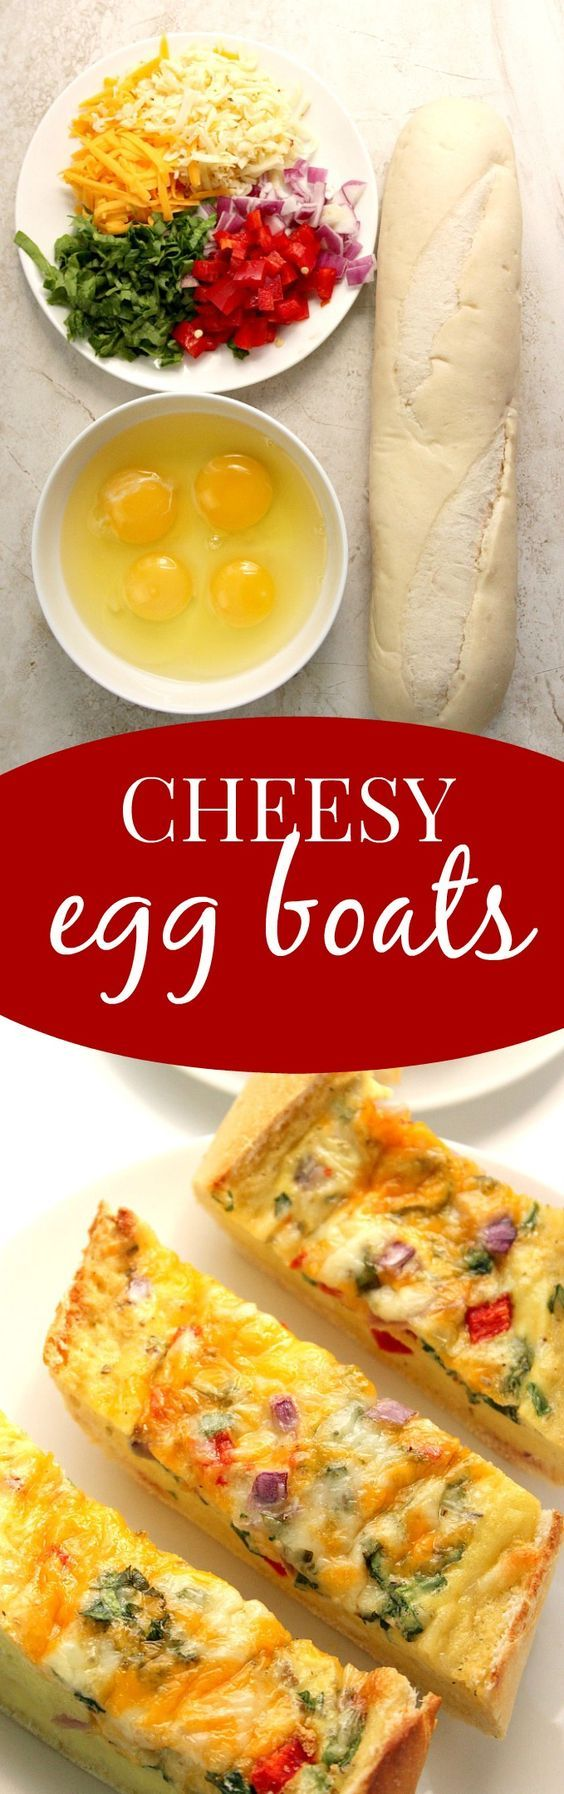 Cheesy Egg Boats recipe - I turned a baguette into a bread boat filled with eggs, cheese and veggies! Perfectly crunchy edges, cheesy filling with lots of flavor from peppers, onions and Monterey Jack cheese. Use Take & Bake baguette for that freshly baked flavor and texture!